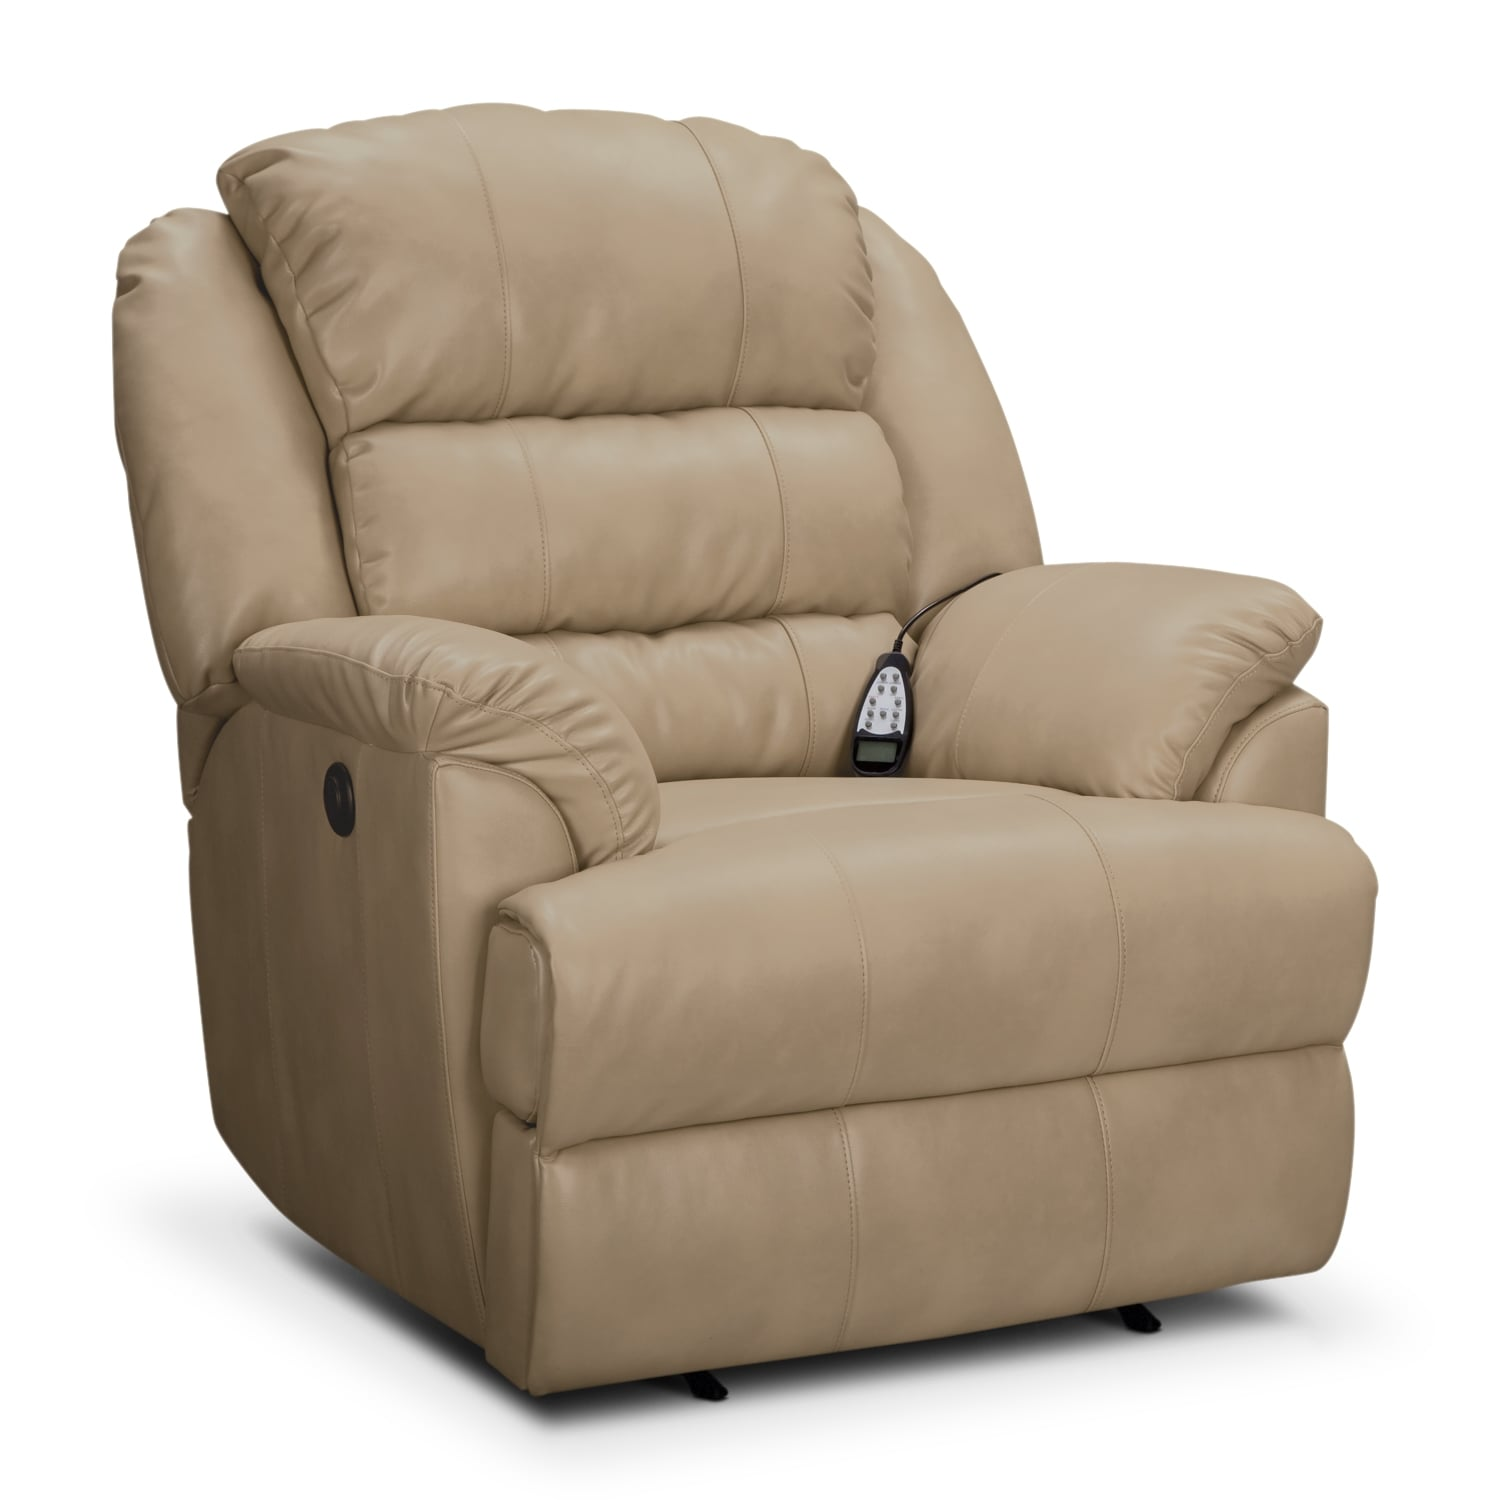 Power Reclining Chairs Hunter Leather Power Recliner Value City Furniture